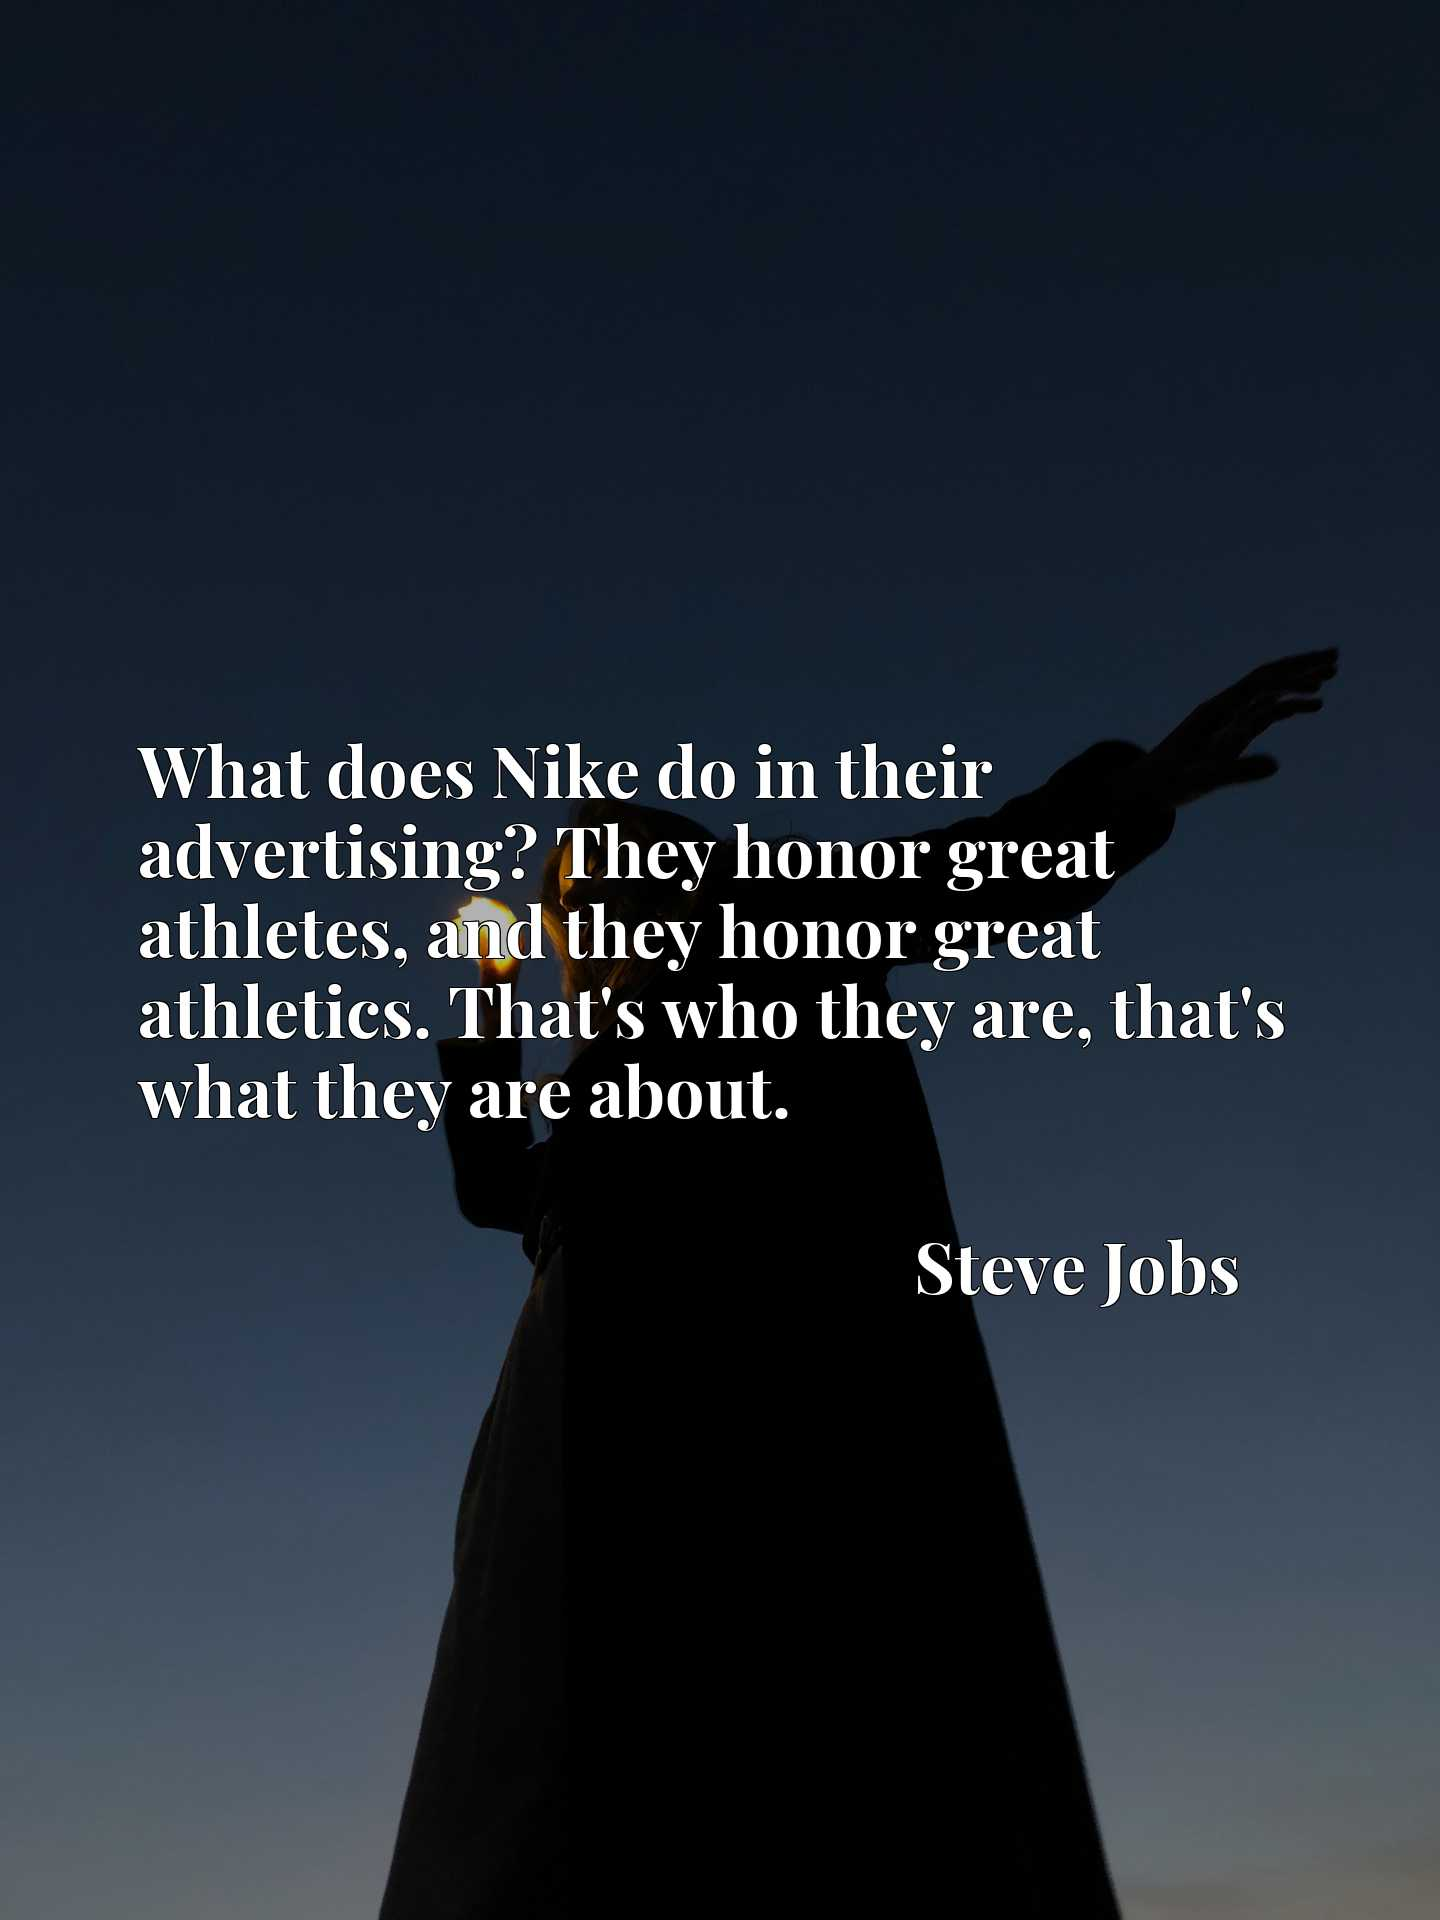 What does Nike do in their advertising? They honor great athletes, and they honor great athletics. That's who they are, that's what they are about.